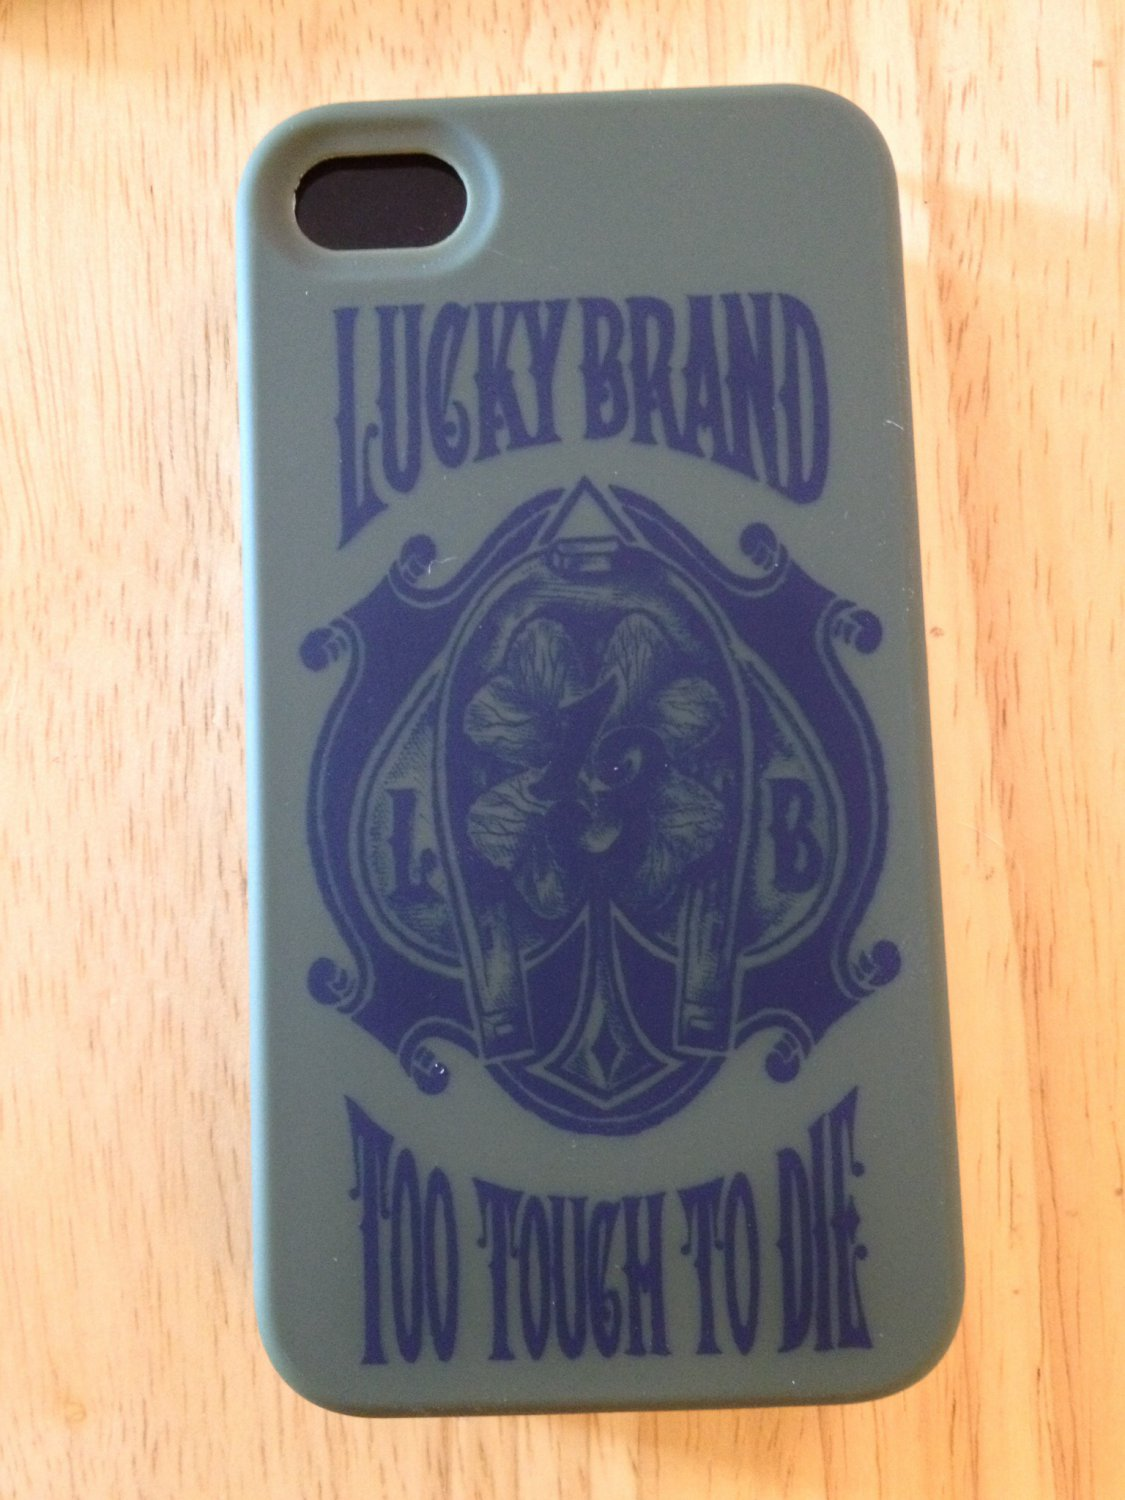 "Lucky Brand ""Too tough to die"" case for iPhone 4 4s"